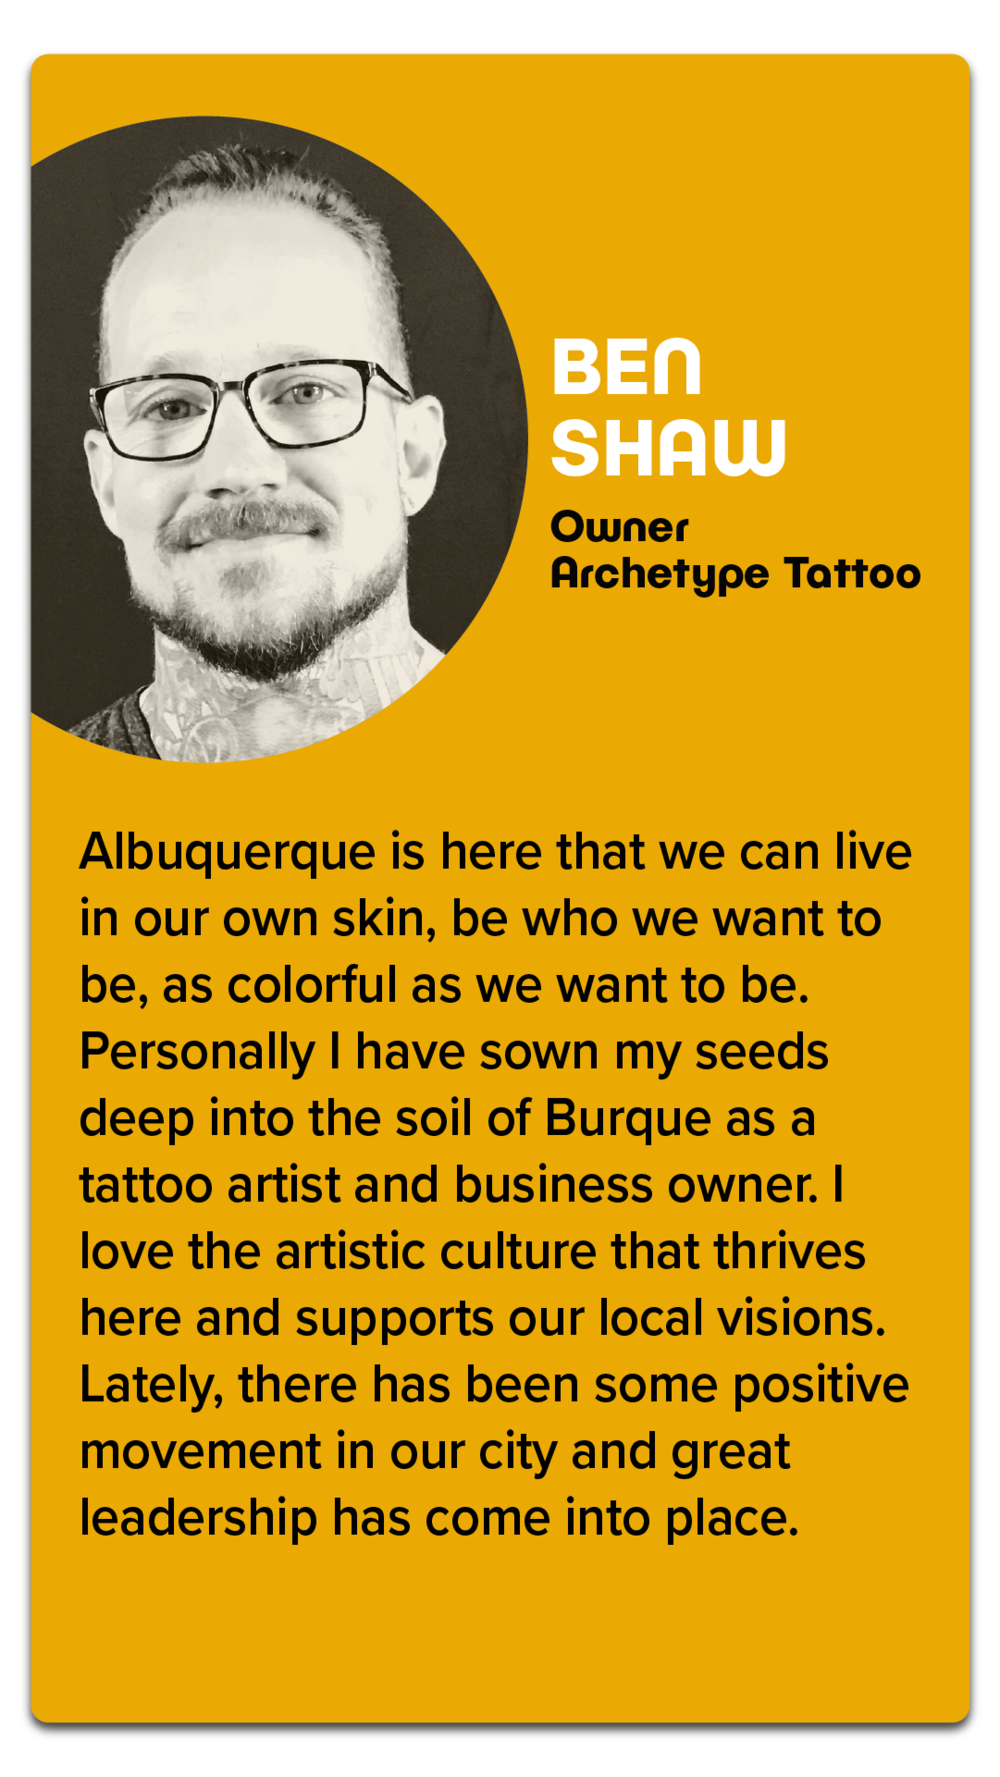 """Ben Shaw, Owner, Archetype Tattoo  """"Albuquerque is here that we can live in our own skin, be who we want to be, as colorful as we want to be. Personally I have sown my seeds deep into the soil of Burque as a tattoo artist and business owner. I love the artistic culture that thrives here and supports our local visions. Lately, there has been some positive movement in our city and great leadership has come into place."""""""